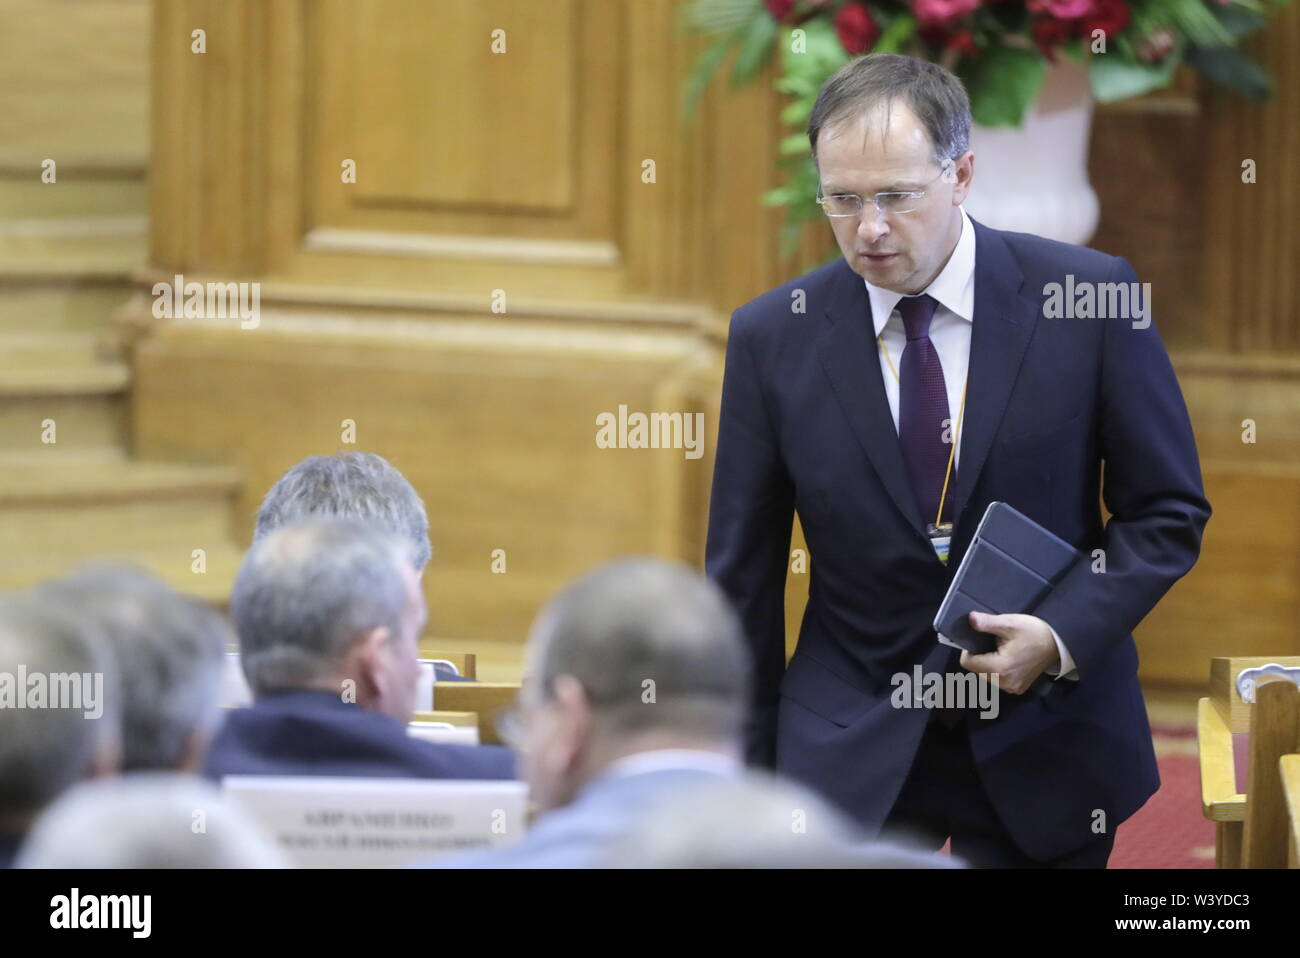 St Petersburg, Russia. 18th July, 2019. ST PETERSBURG, RUSSIA - JULY 18, 2019: Russia's Culture Minister Vladimir Medinsky arrives for a plenary meeting at the 5th Belarus-Russia Forum of Regions, Tauride Palace. Mikhail Metzel/TASS Credit: ITAR-TASS News Agency/Alamy Live News - Stock Image